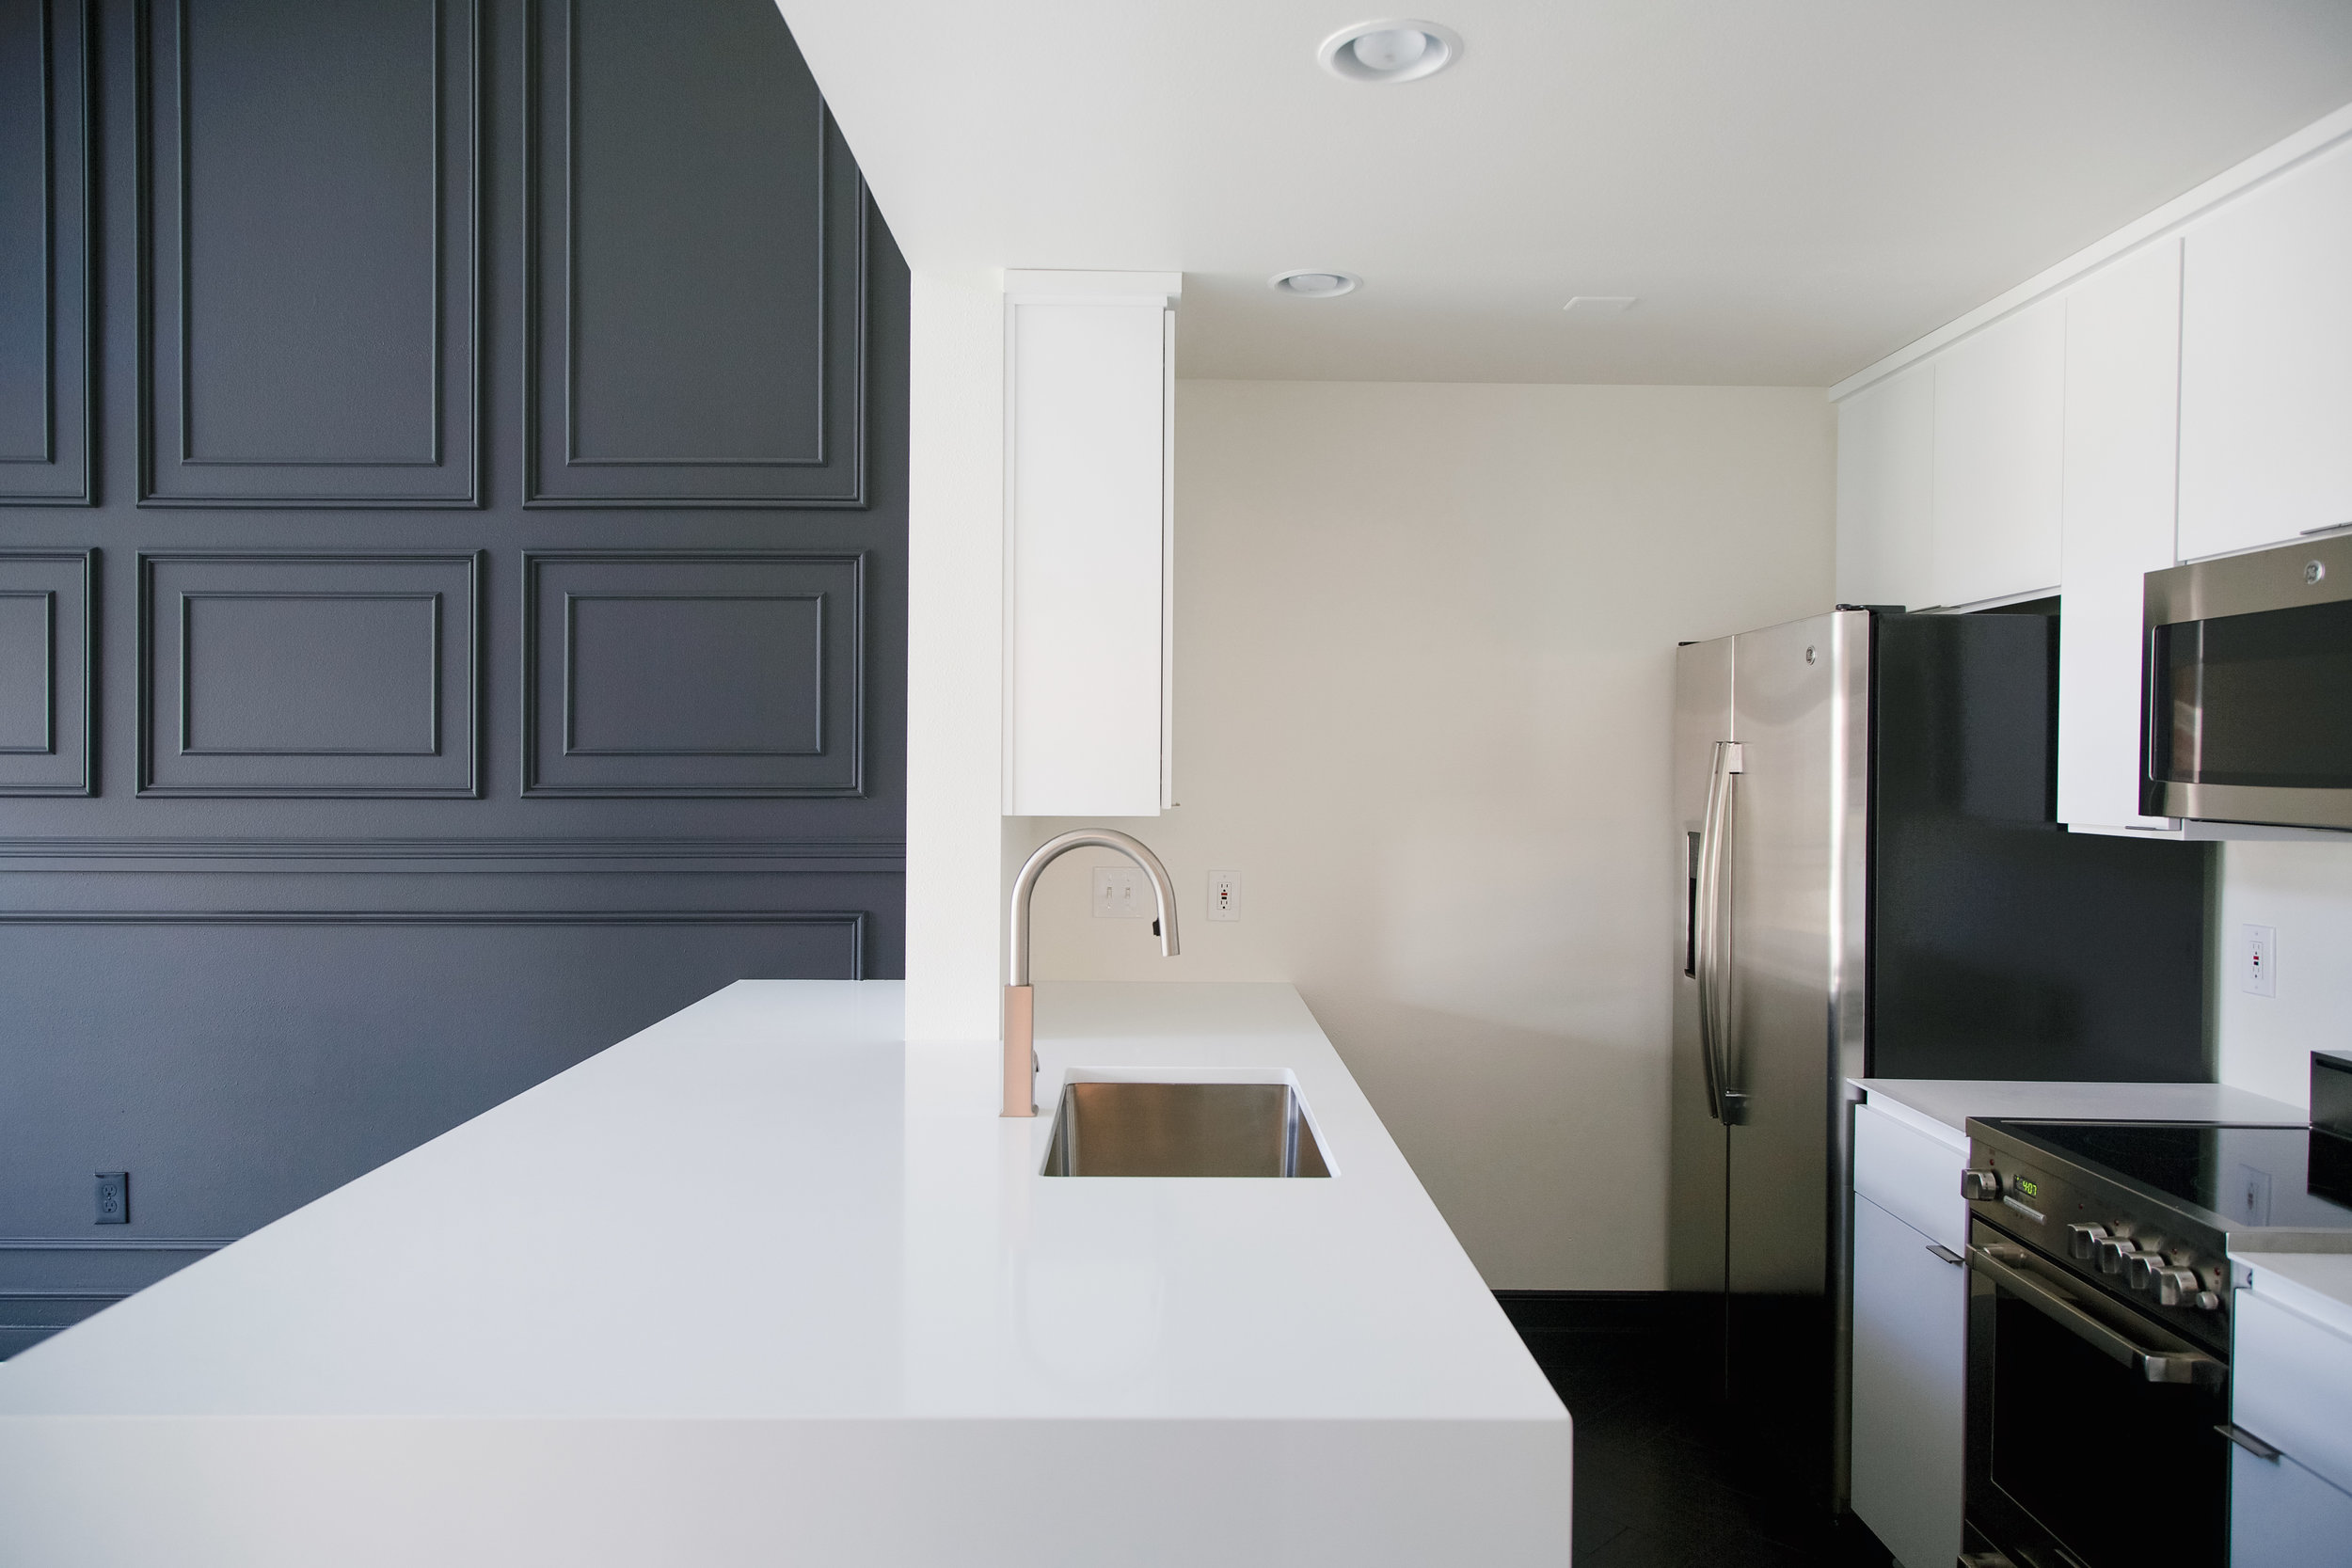 Modern kitchen with clean white pental quartz countertops and a Moen faucet.